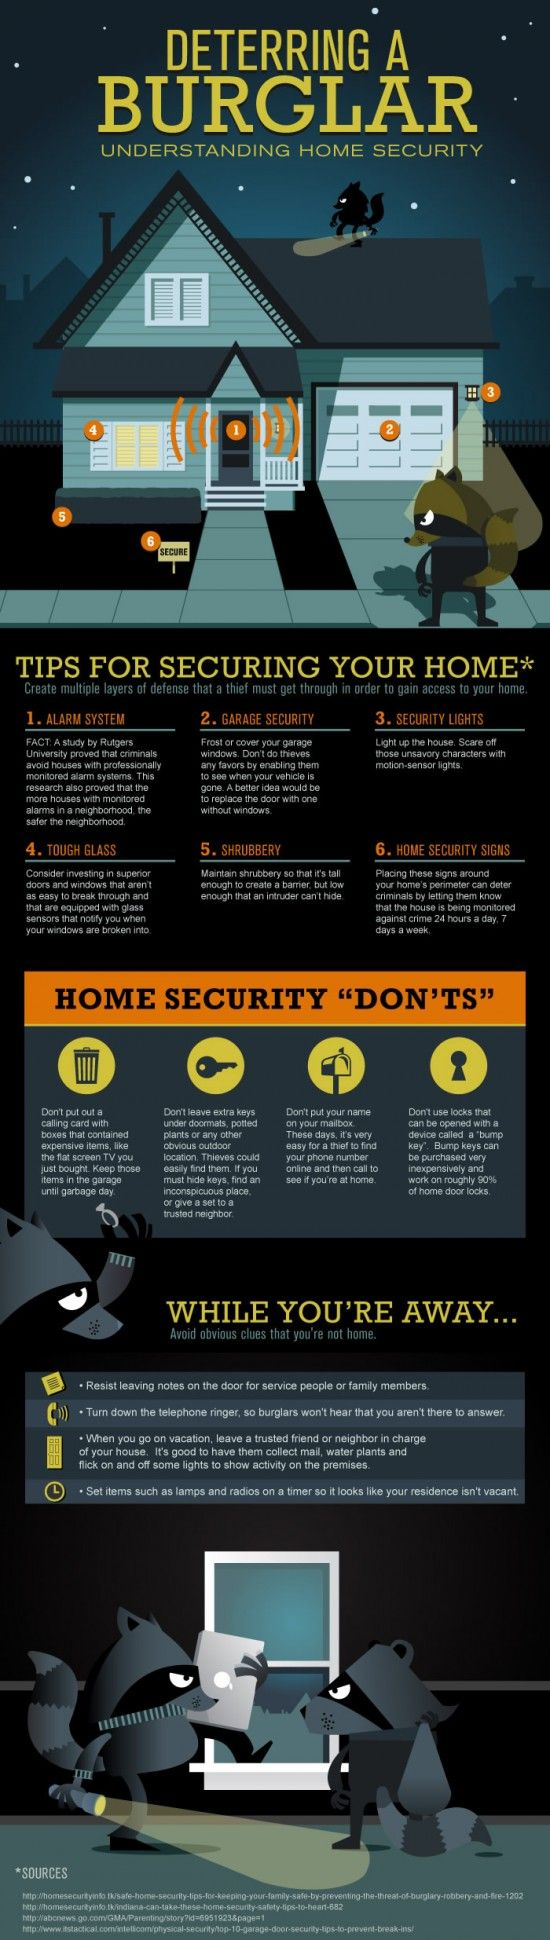 Trusting that your home, family and belongings are protected is the key to having peace of mind when you're away. By following these tips forhome securityyou can go to work or on vacation knowing you've taken the appropriate measures to avoid a break-in or theft. These are simple and effective steps you can take today to ensure your home is protected all year-round. From utilizing shrubbery as a barrier to installing motion-sensor lights, there are many tools available to assist you in…